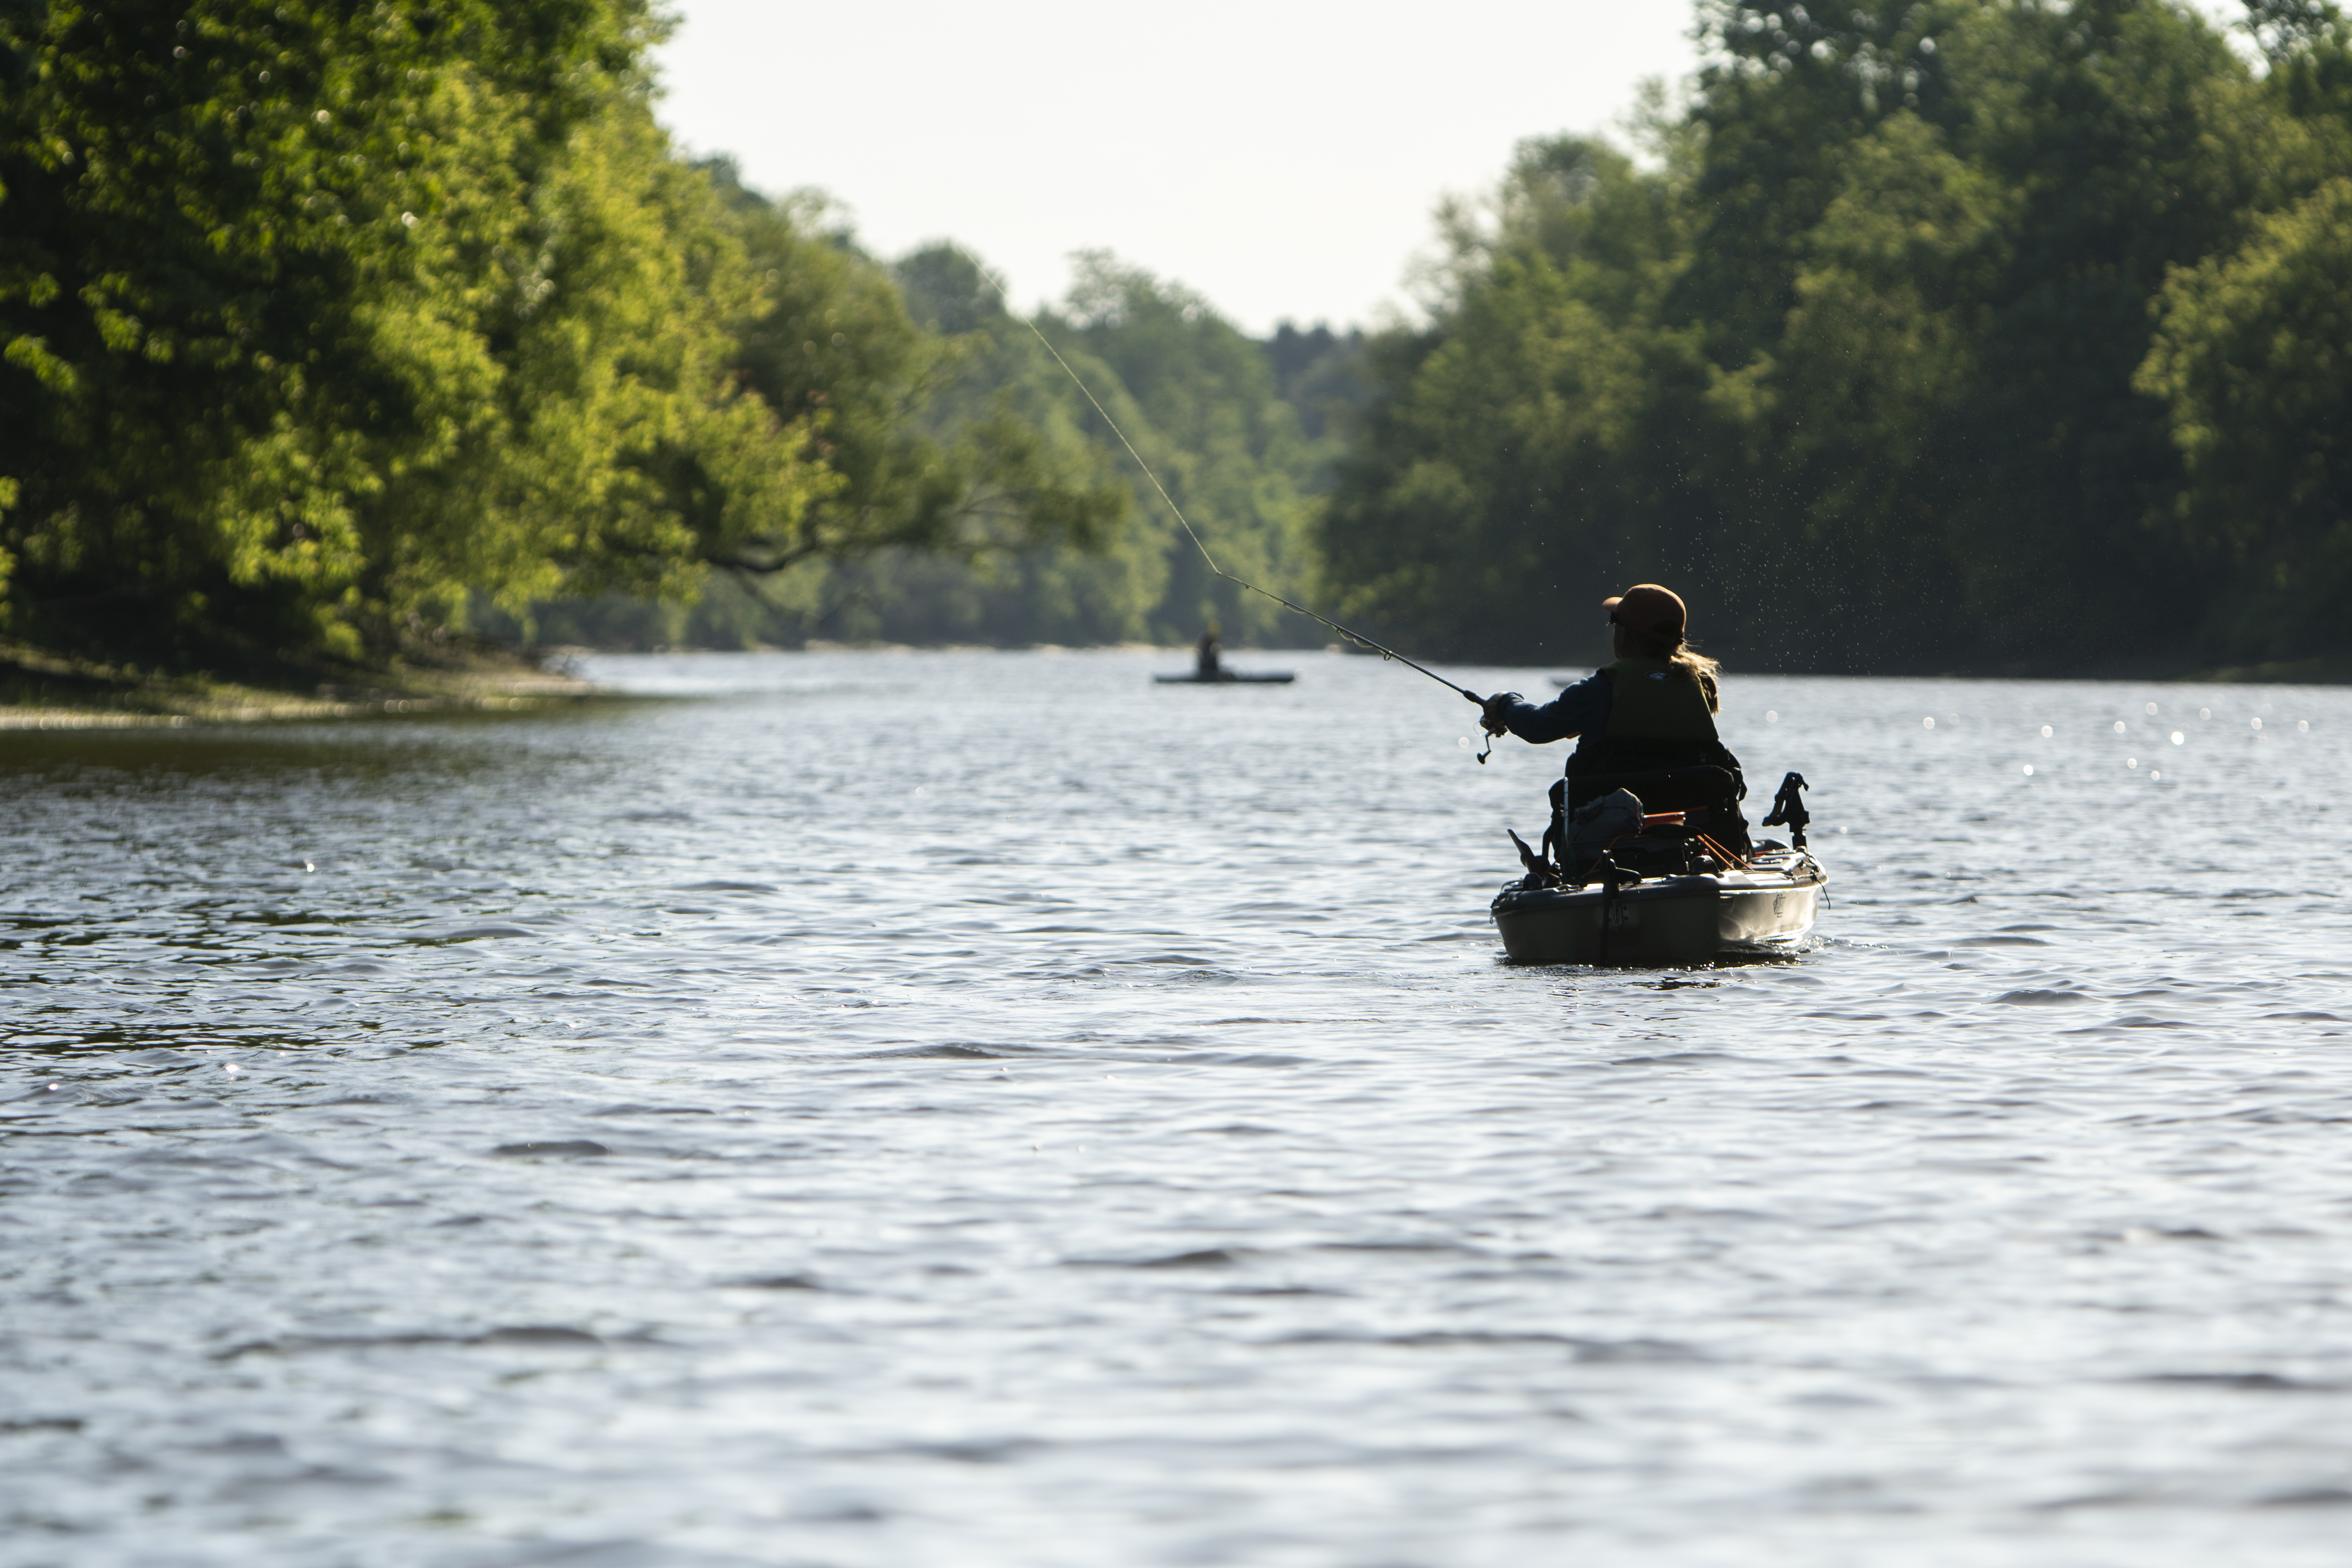 Kayaks: The Catch 130HD by Pelican Premium - Image 4613